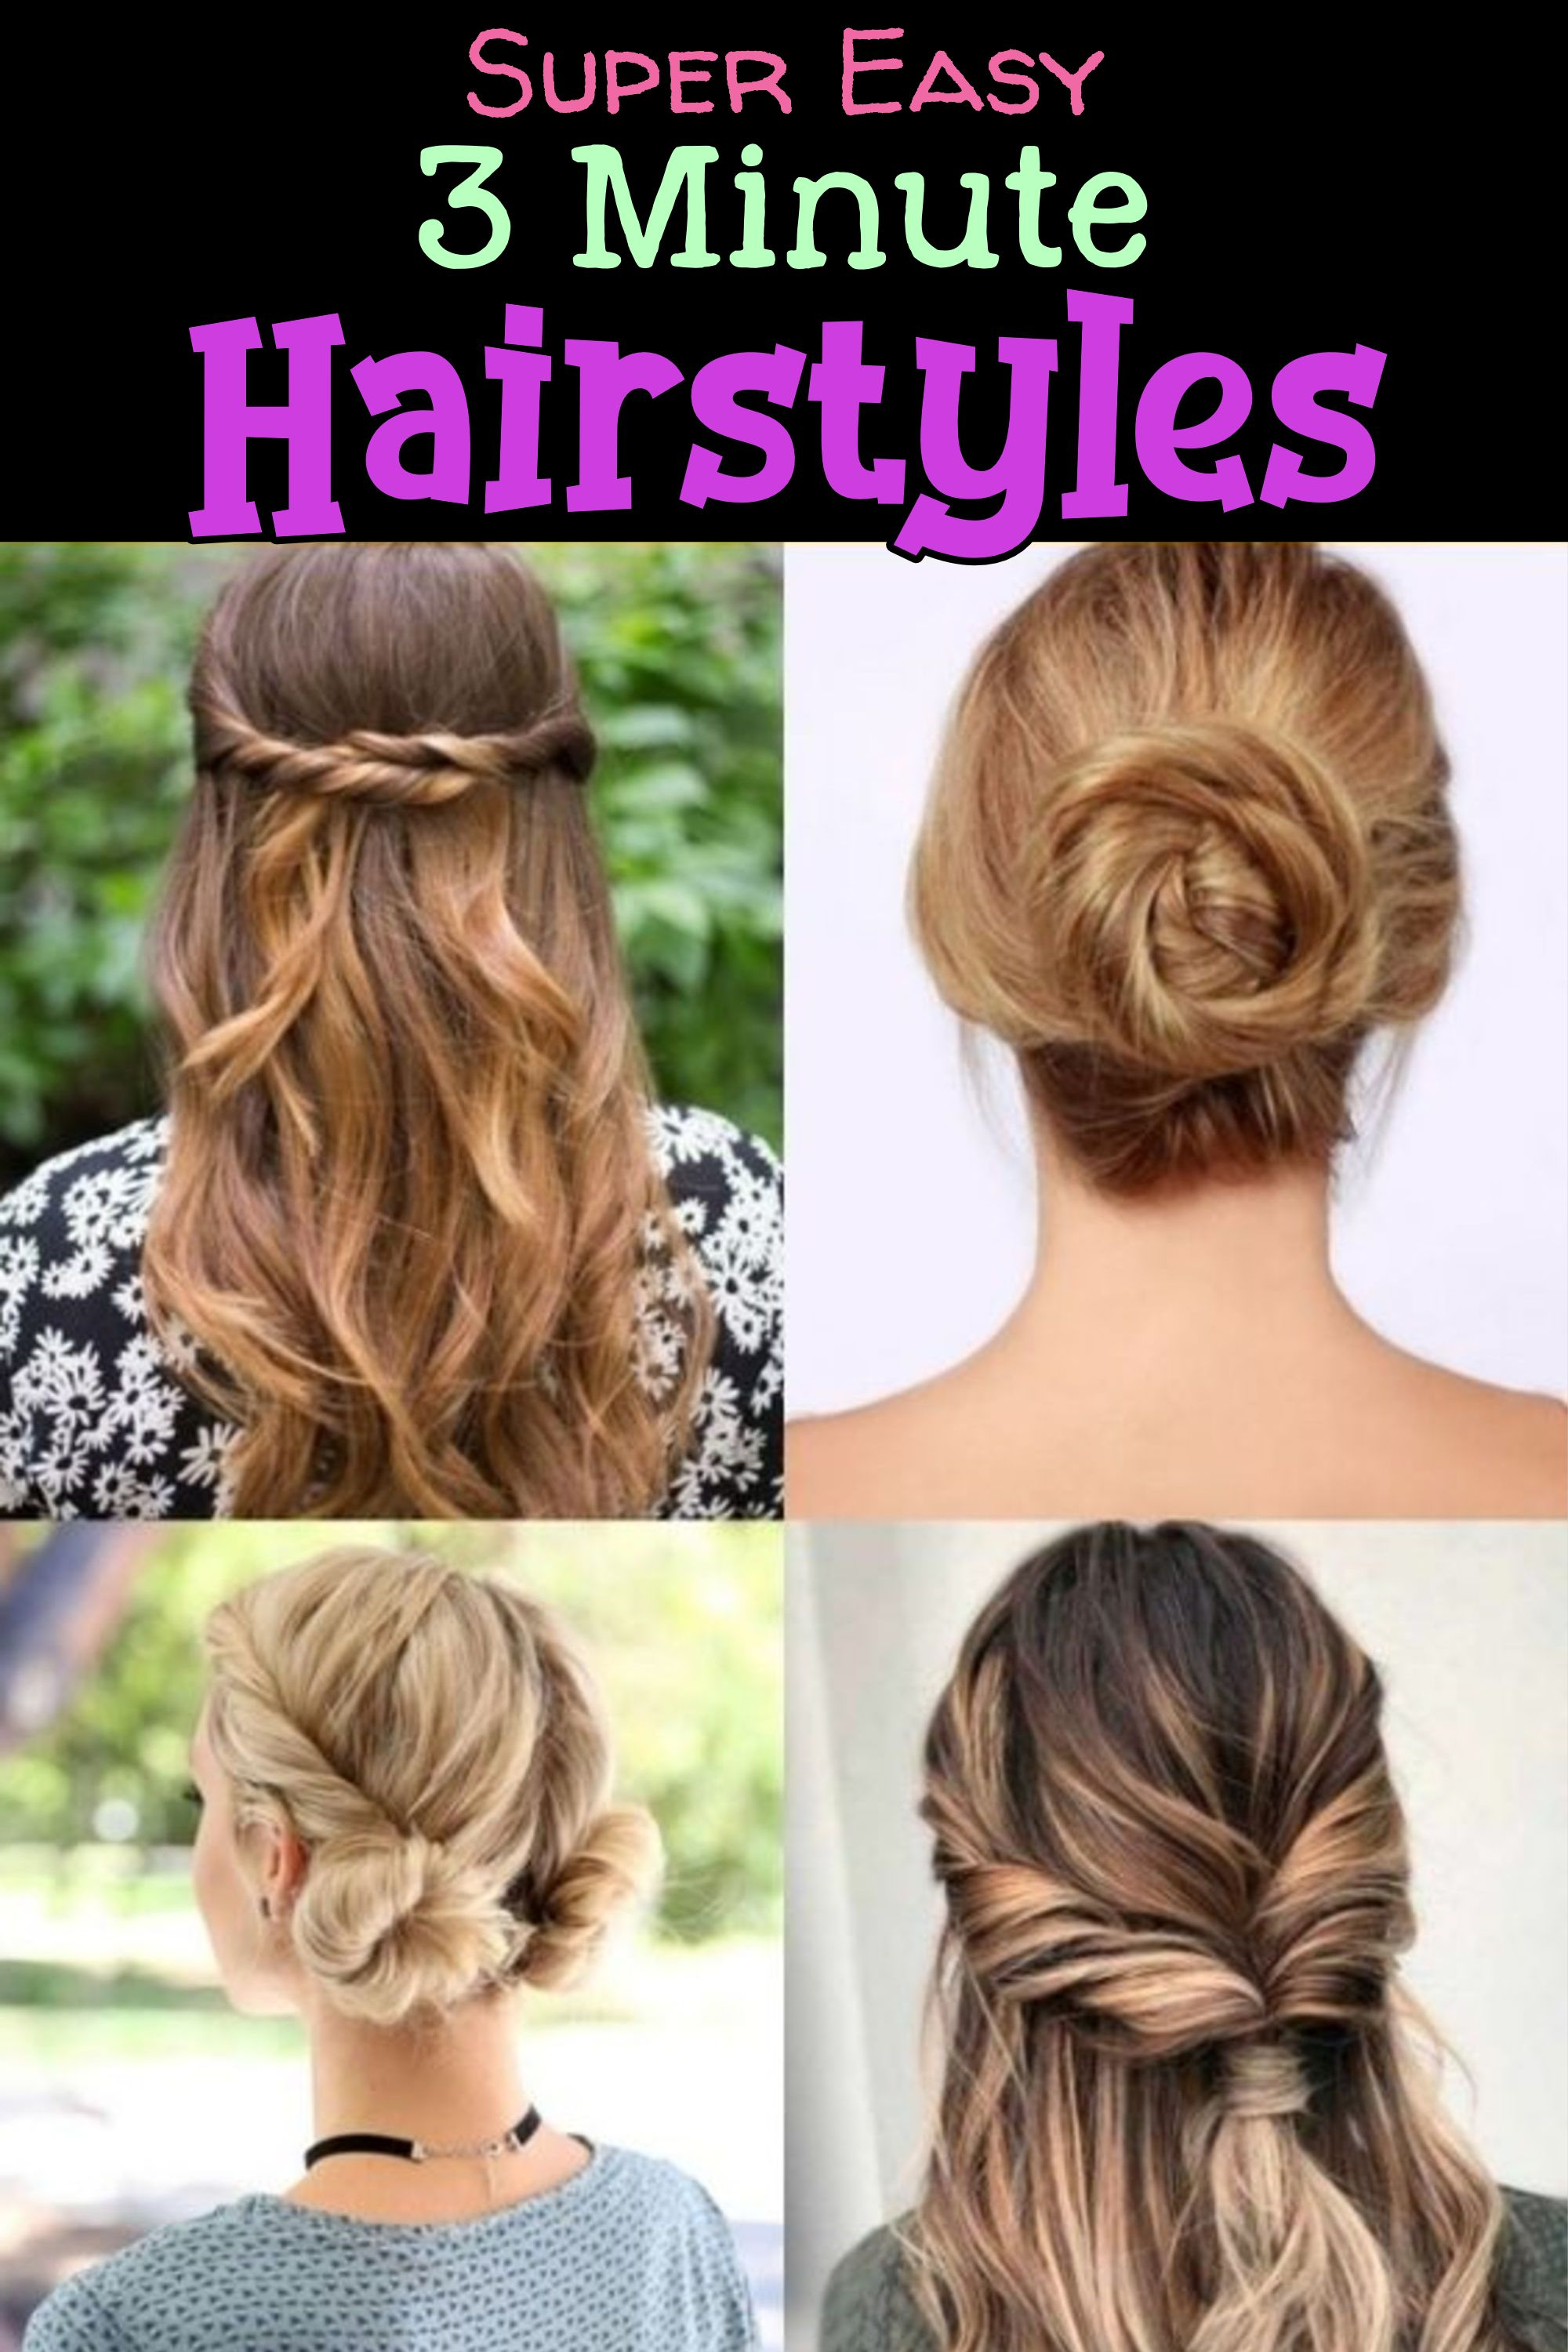 10 Easy Lazy Girl Hairstyle Ideas Step By Step Video Tutorials For Lazy Day Running Late Quick Hairstyles Clever Diy Ideas Lazy Girl Hairstyles Easy Everyday Hairstyles Running Late Hairstyles